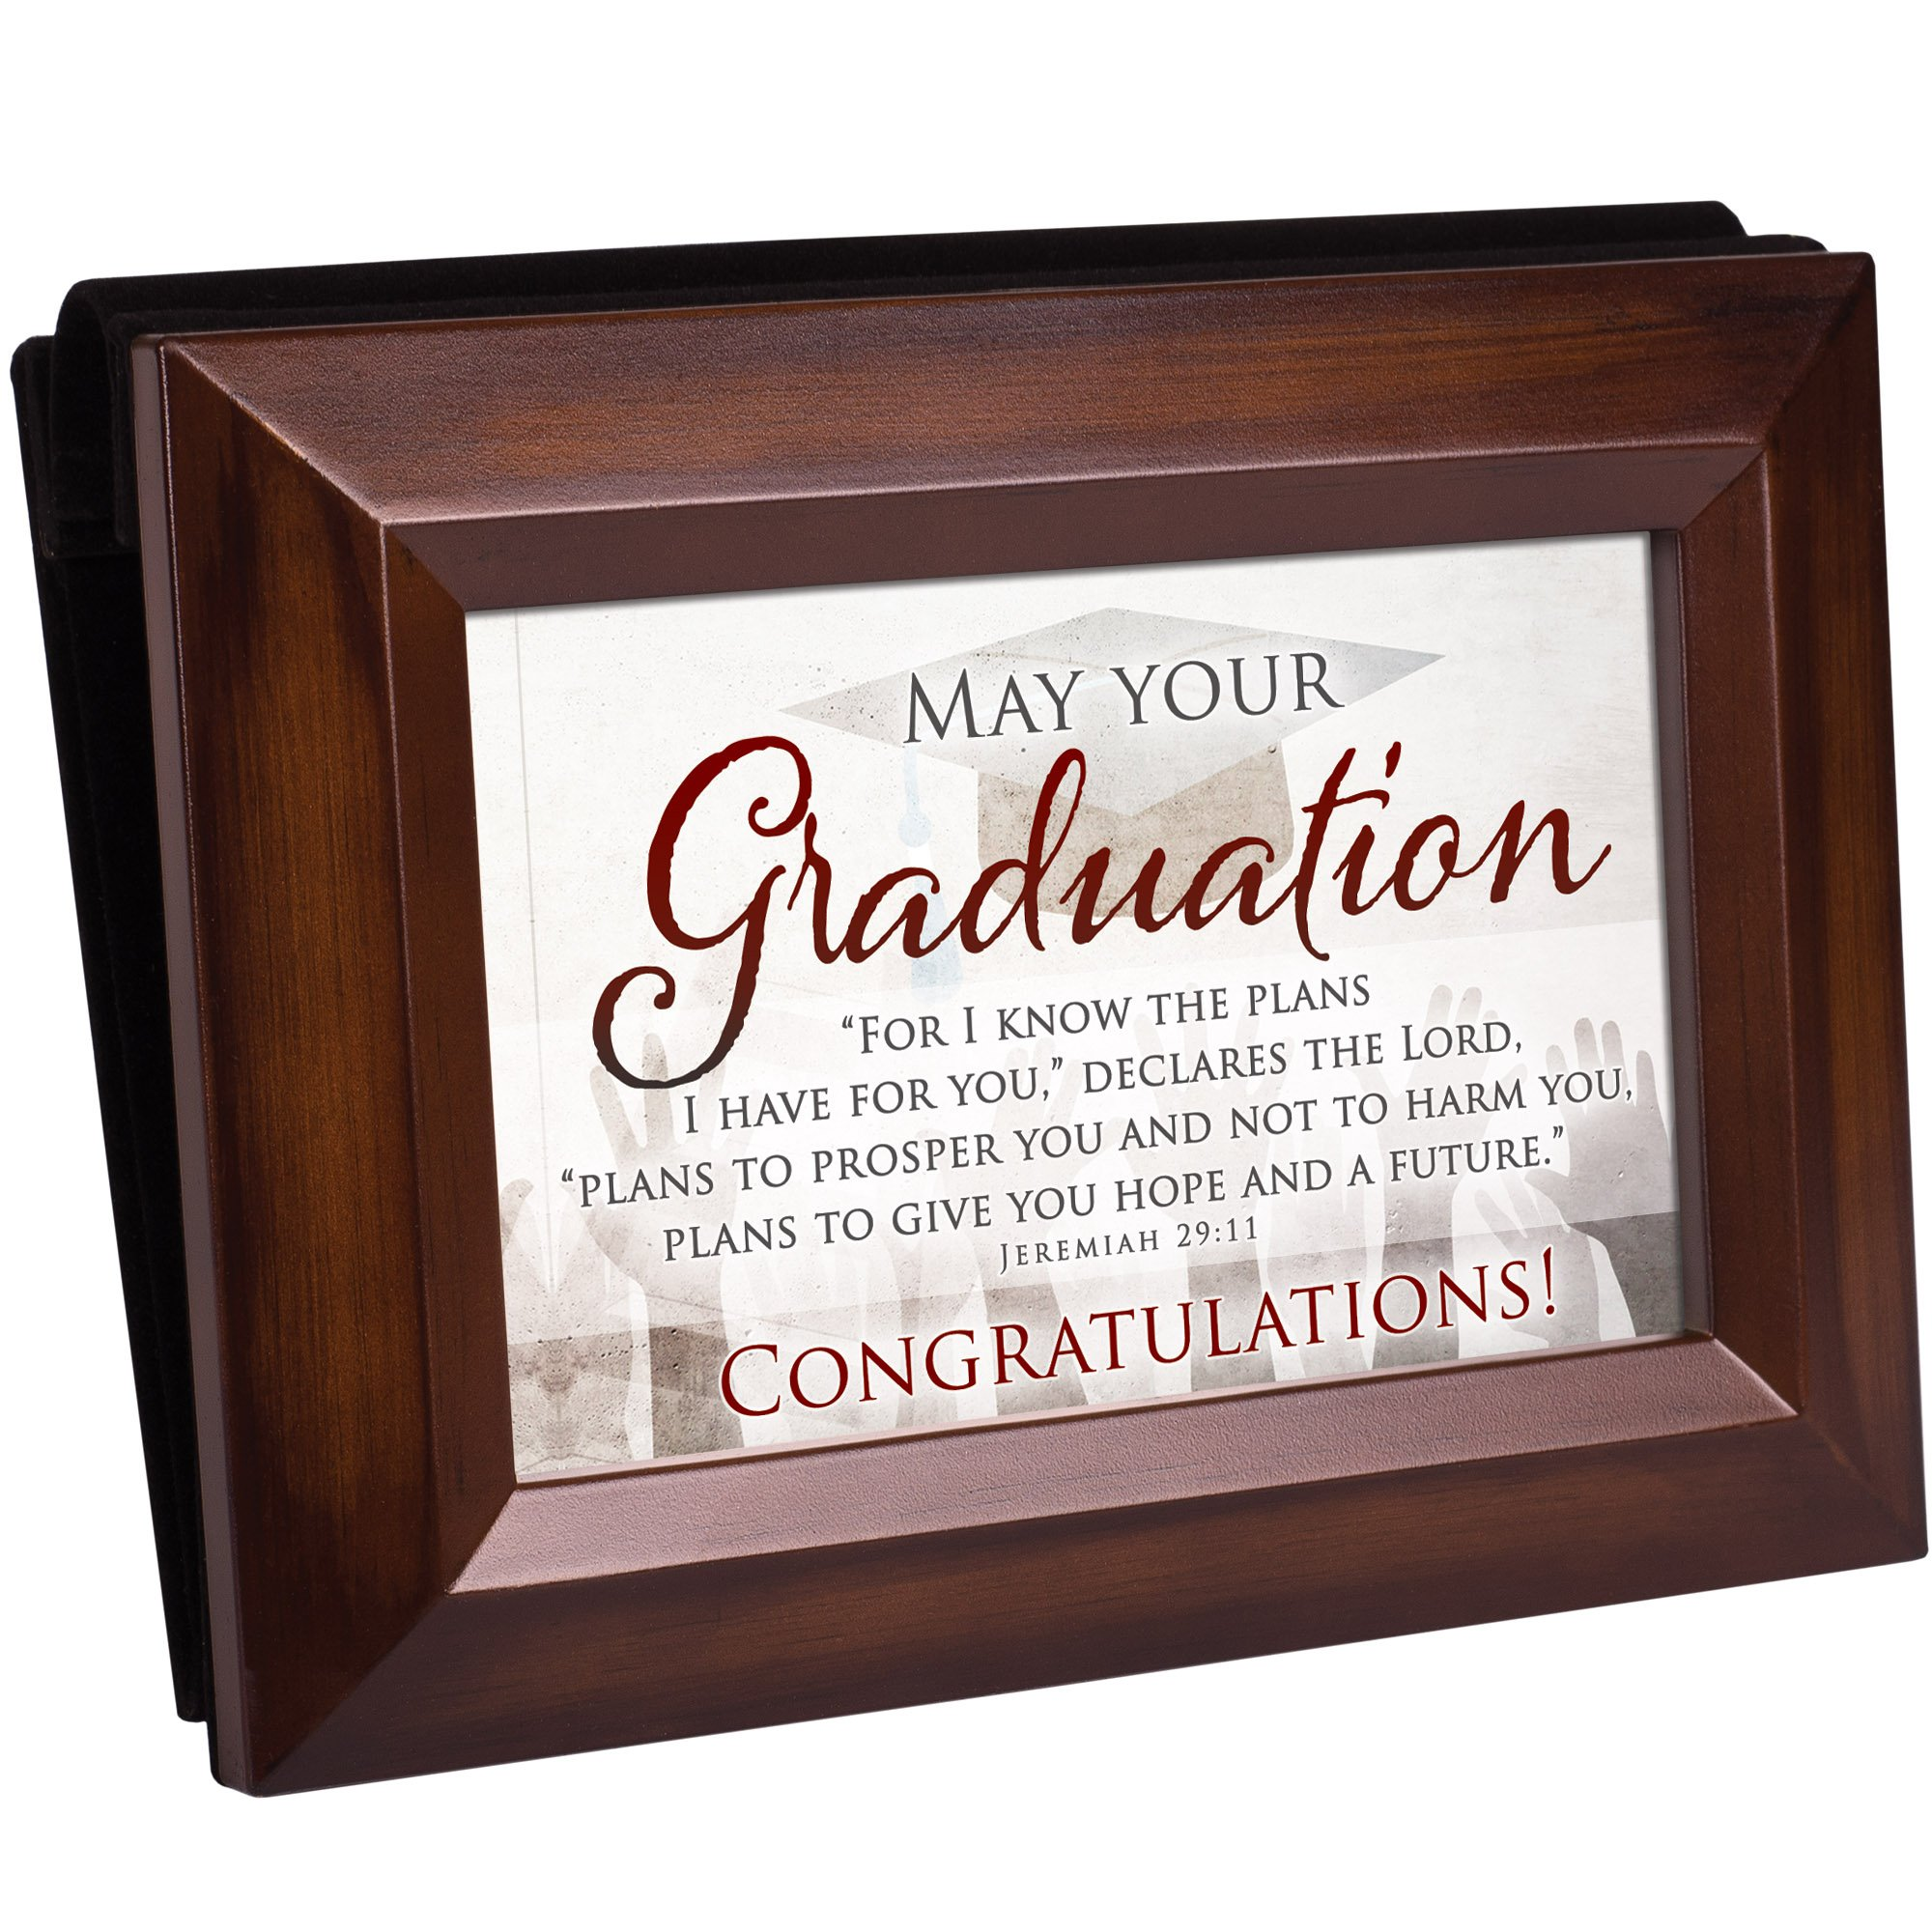 Cottage Garden Graduation Dreams Great Things Woodgrain Raised Panel Easel Back Photo Album by Cottage Garden